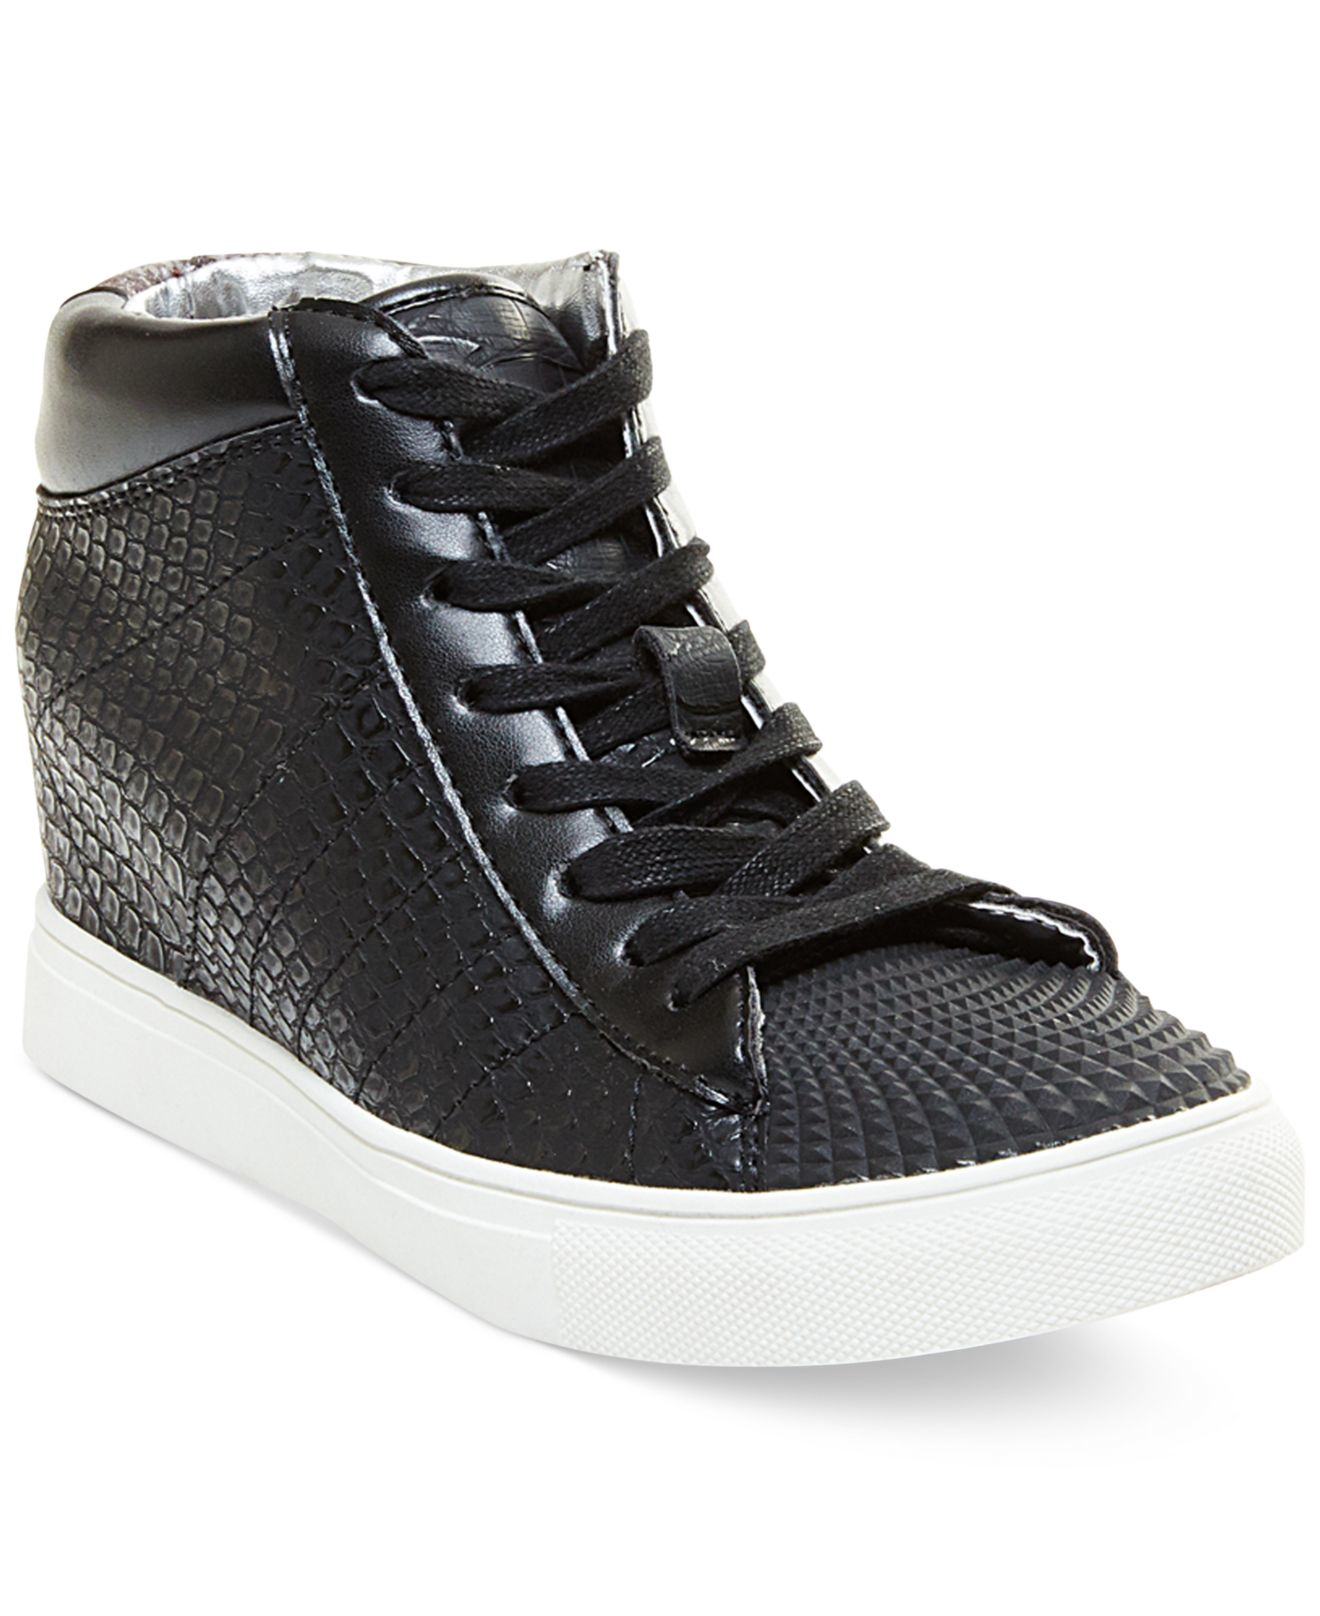 madden superstud lace up wedge high top sneakers in